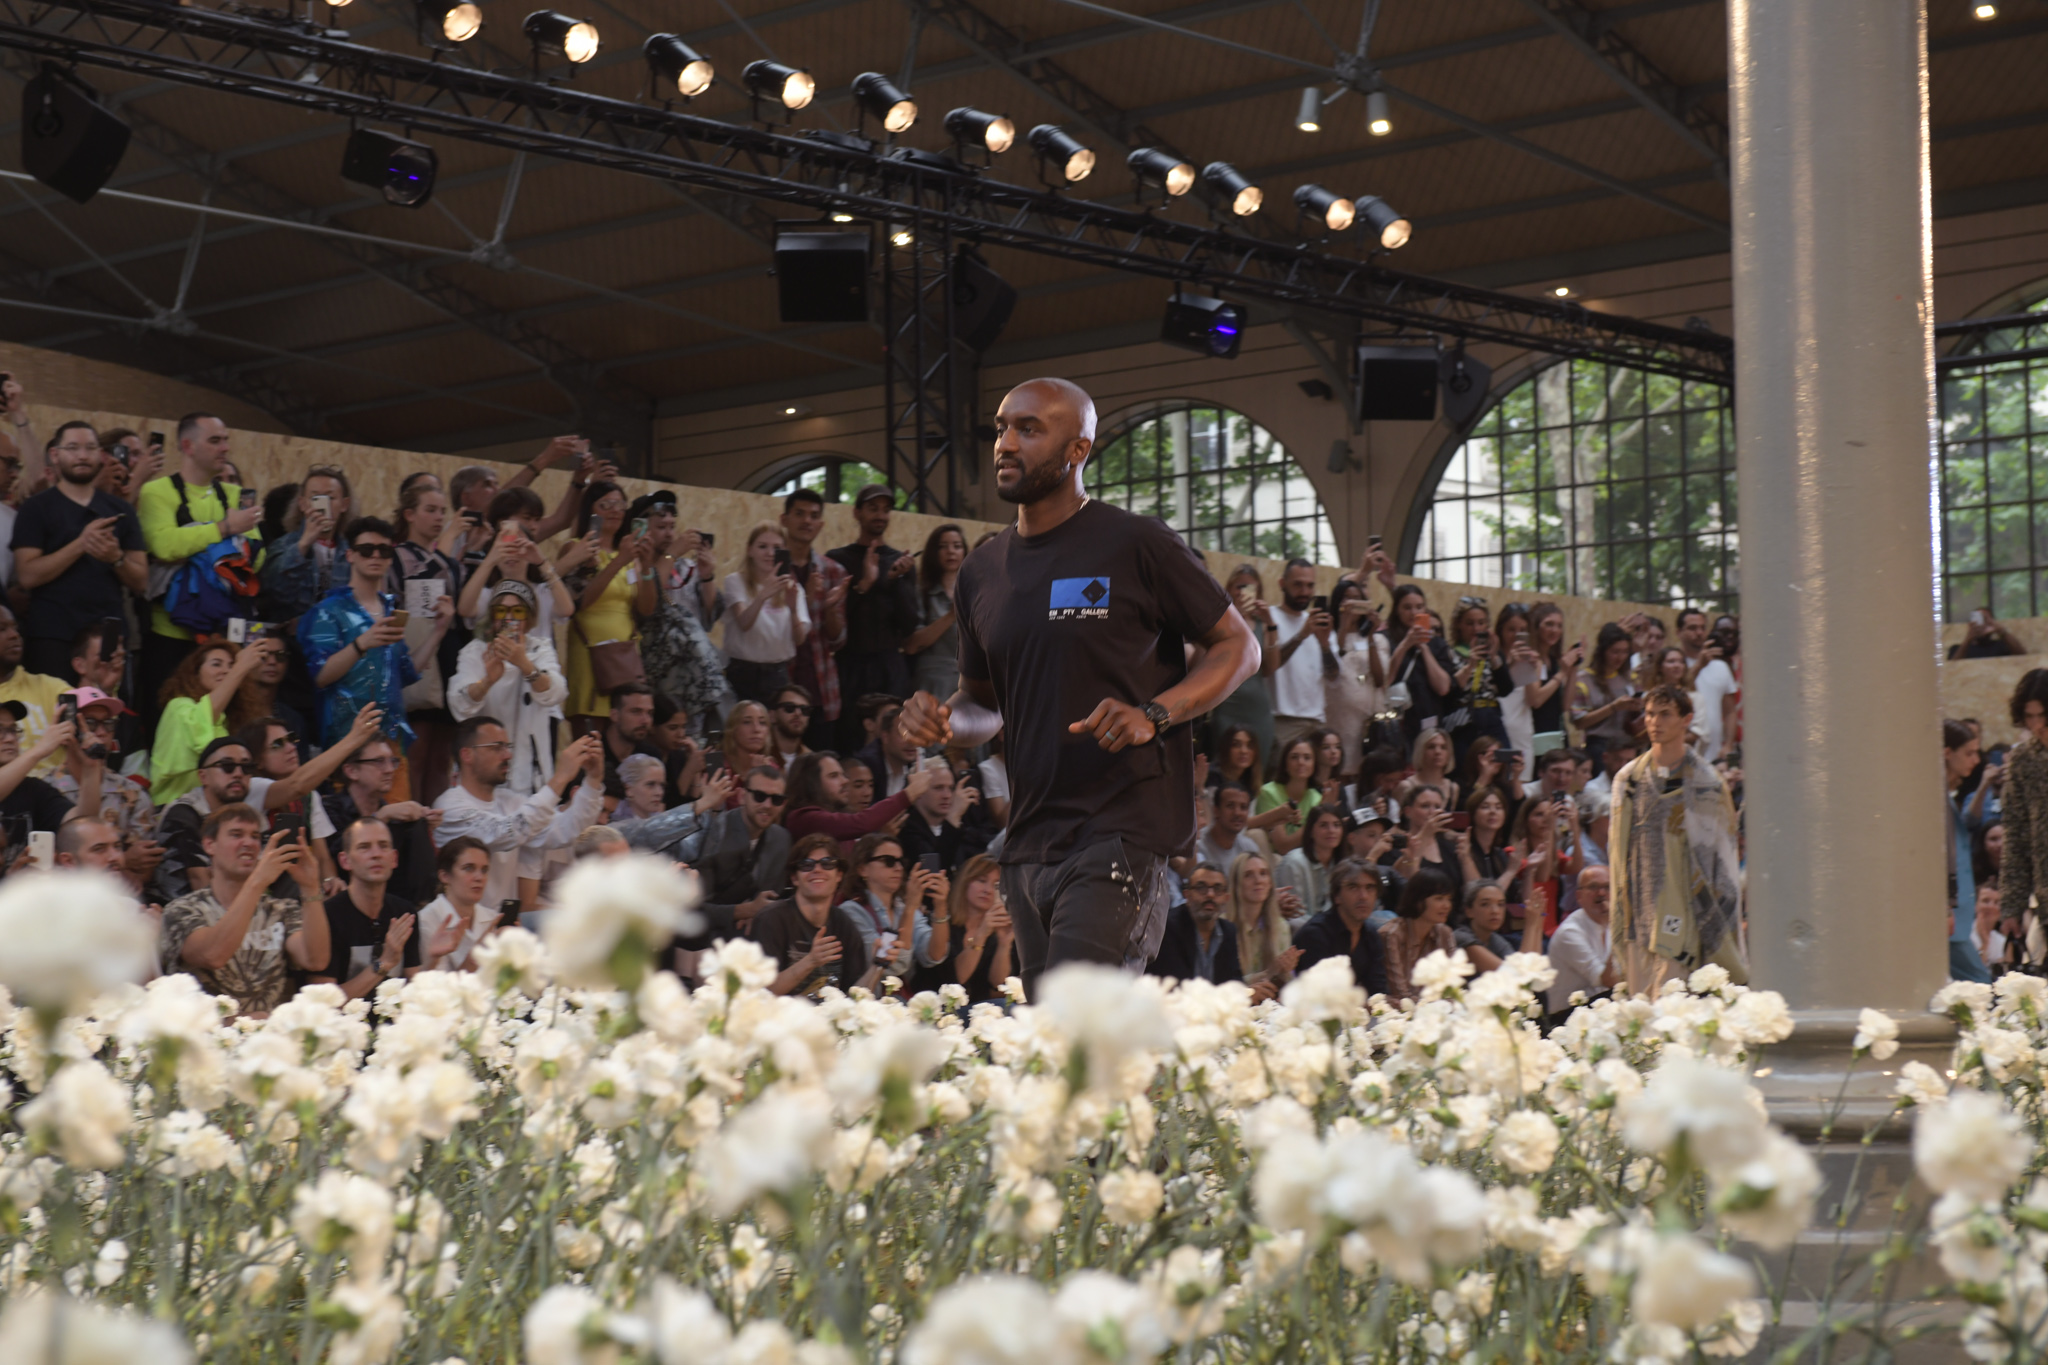 Virgil Abloh takes a bow after the Off White spring 2020 show